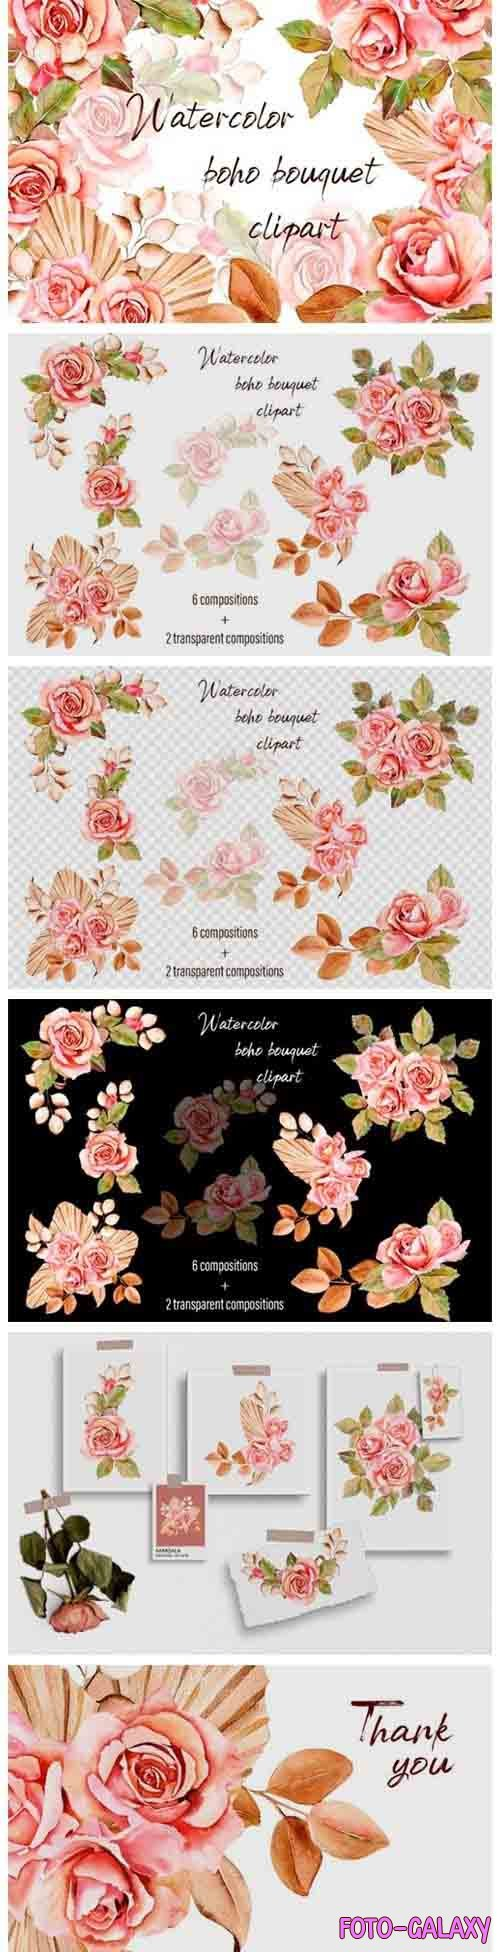 Watercolor bouquet pink roses - 1037713